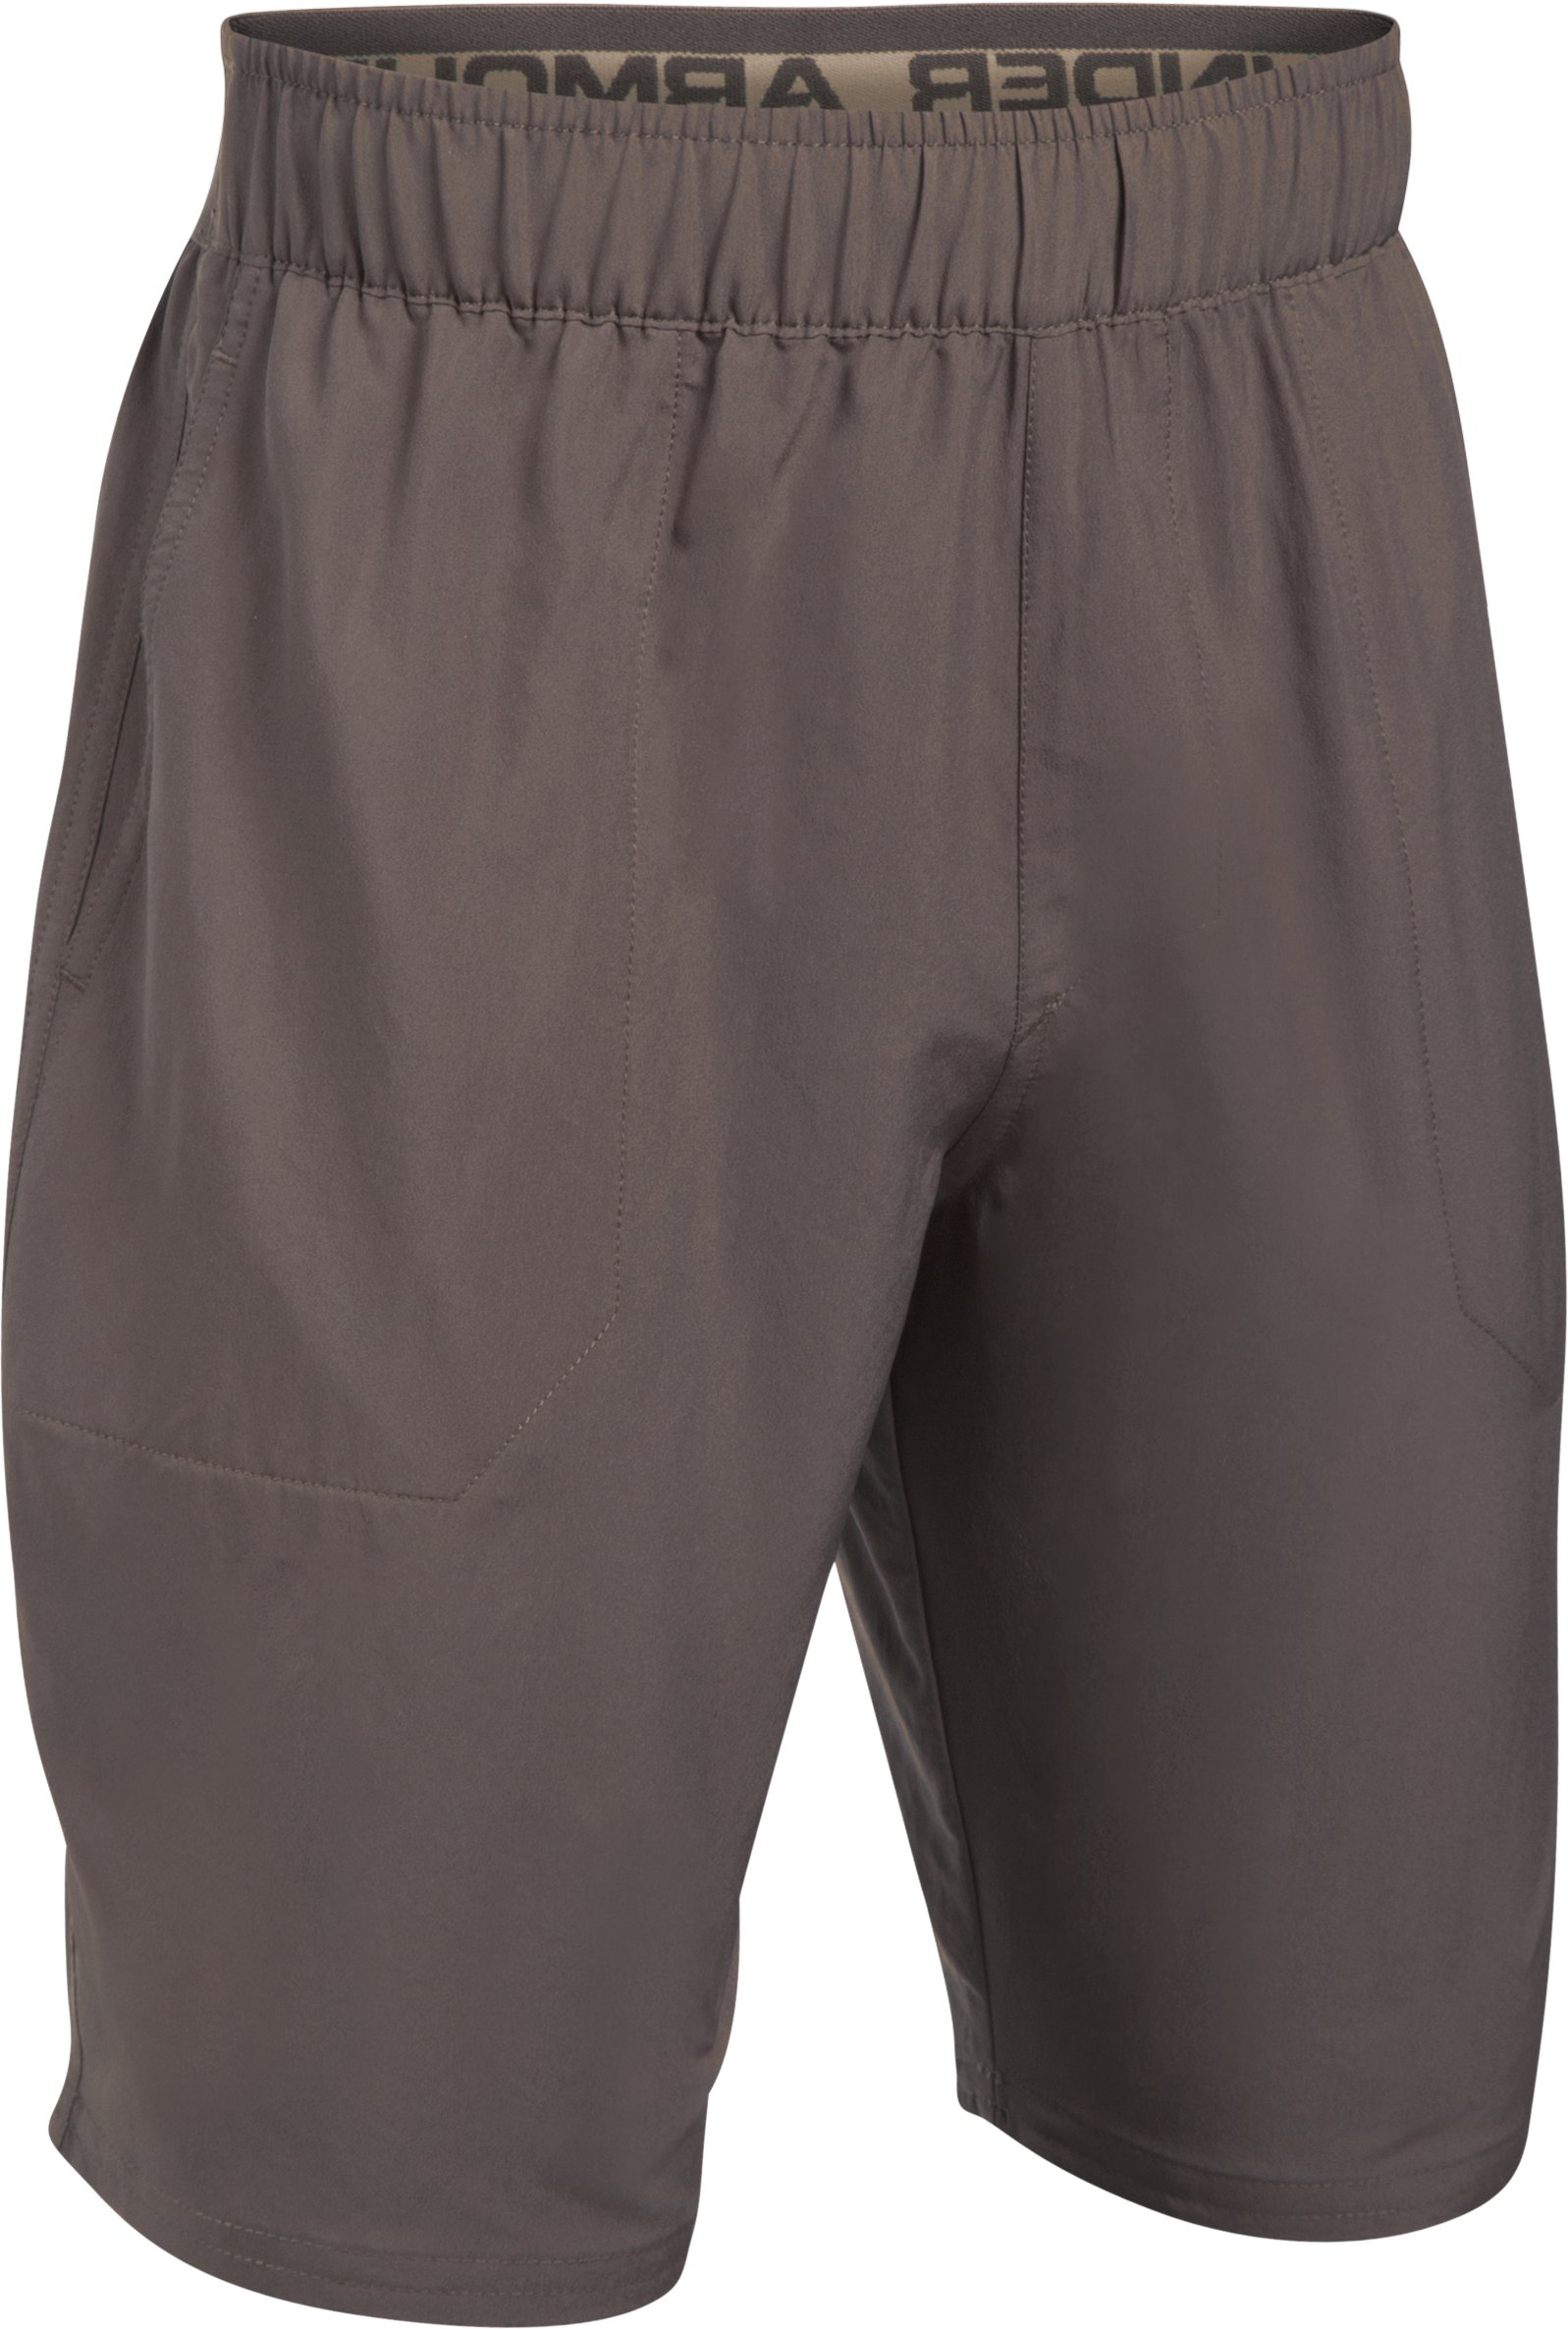 Boys' UA Coastal Amphibious Shorts, FRESH CLAY,